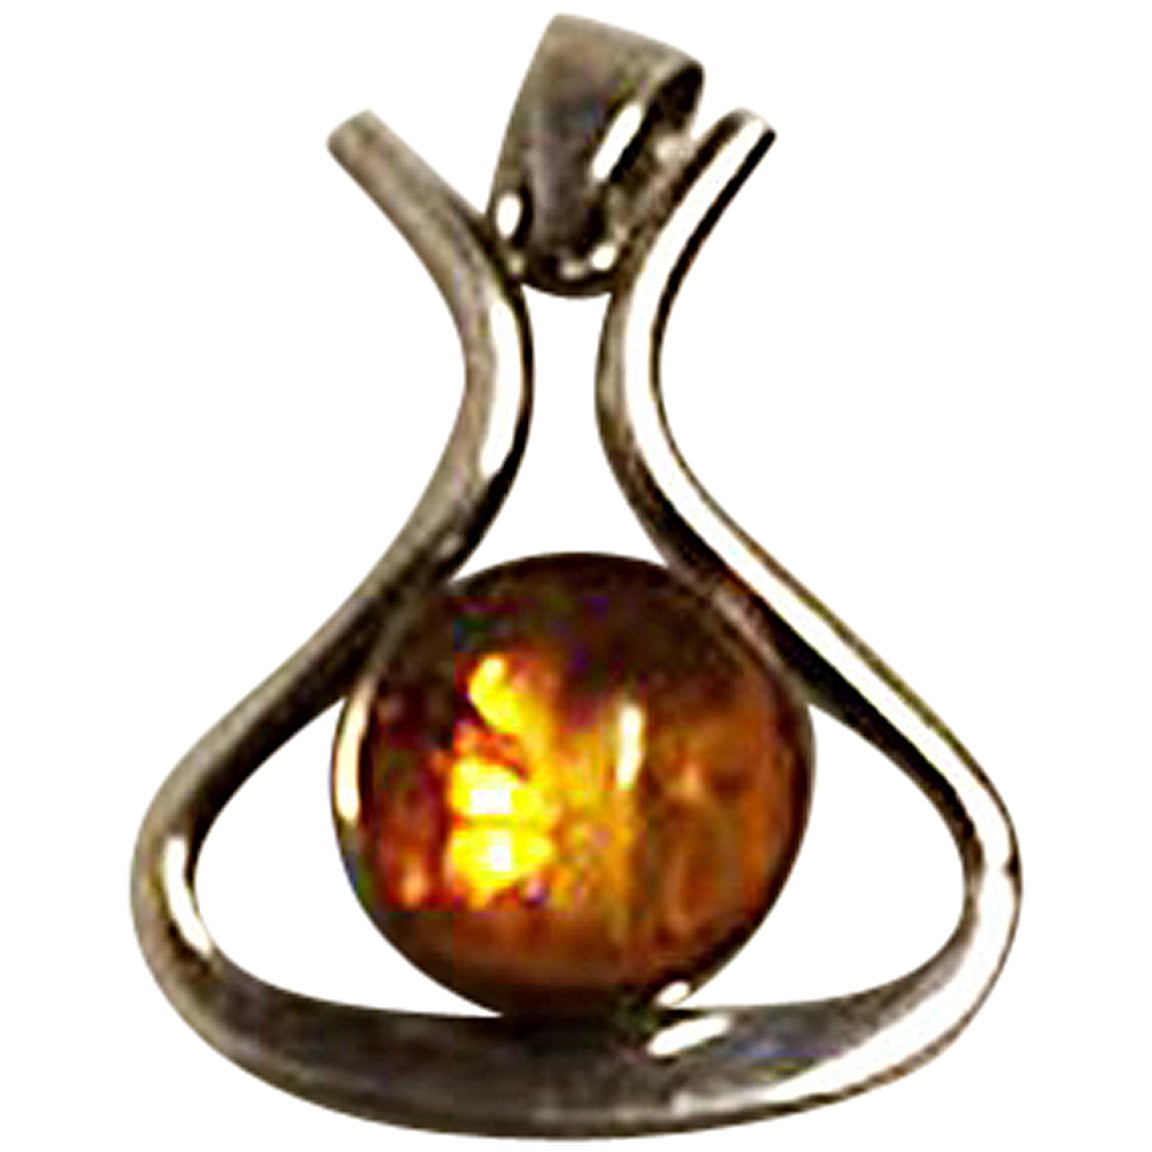 Niels Erik From Sterling Silver Pendant with Amber